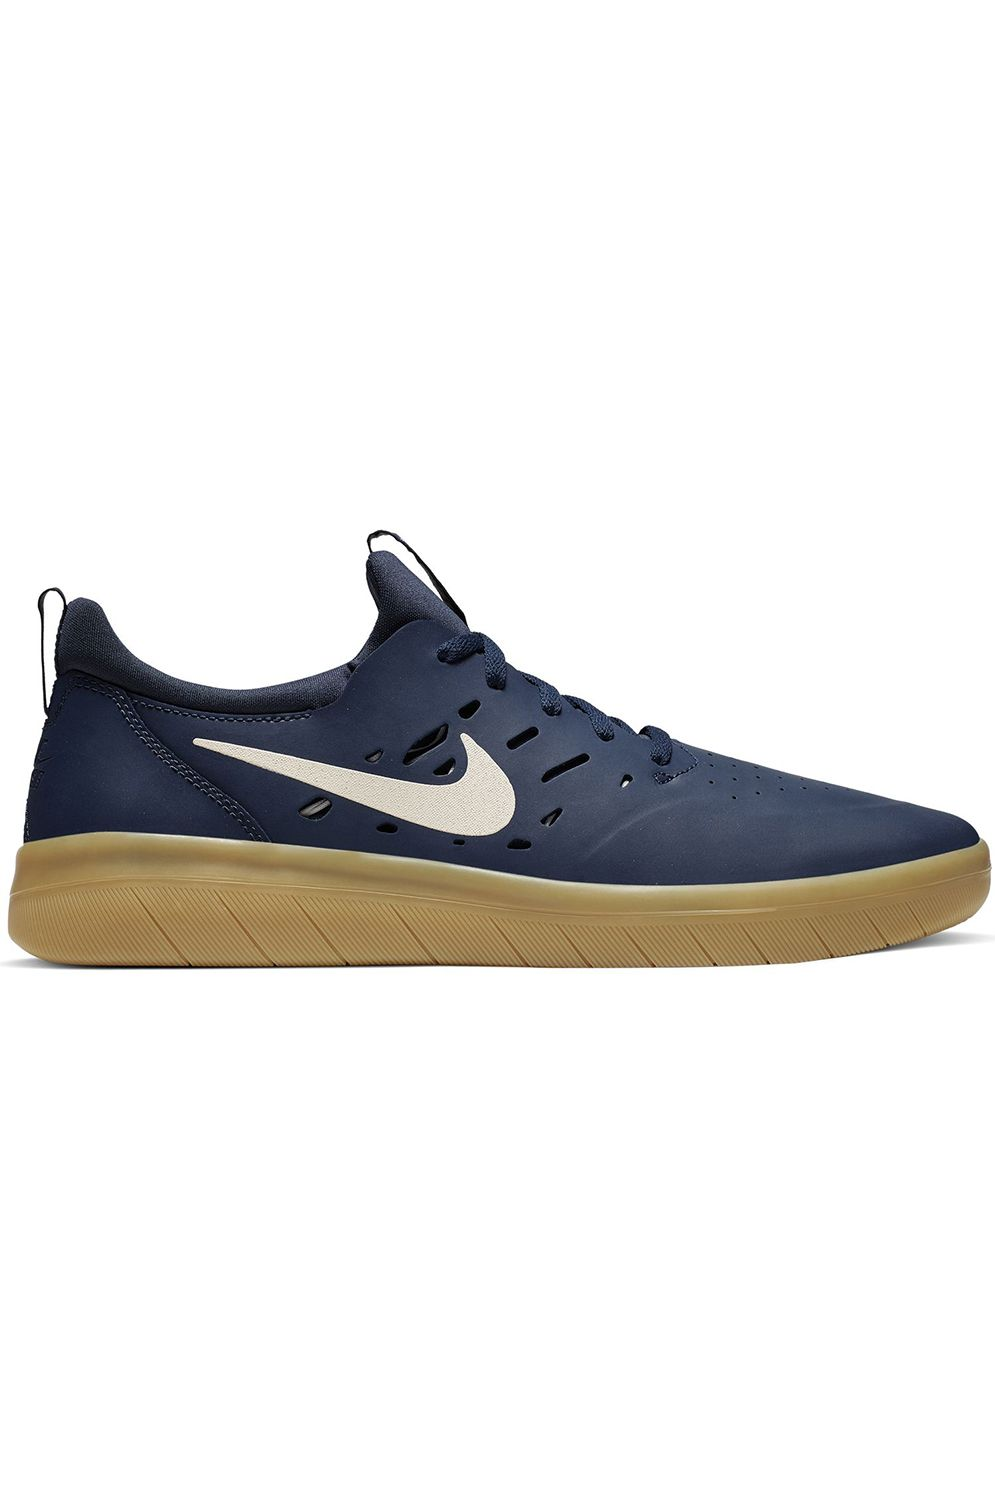 Tenis Nike Sb NYJAH FREE Midnight Navy/Summit White-Midnight Navy-Gum Lt Brown